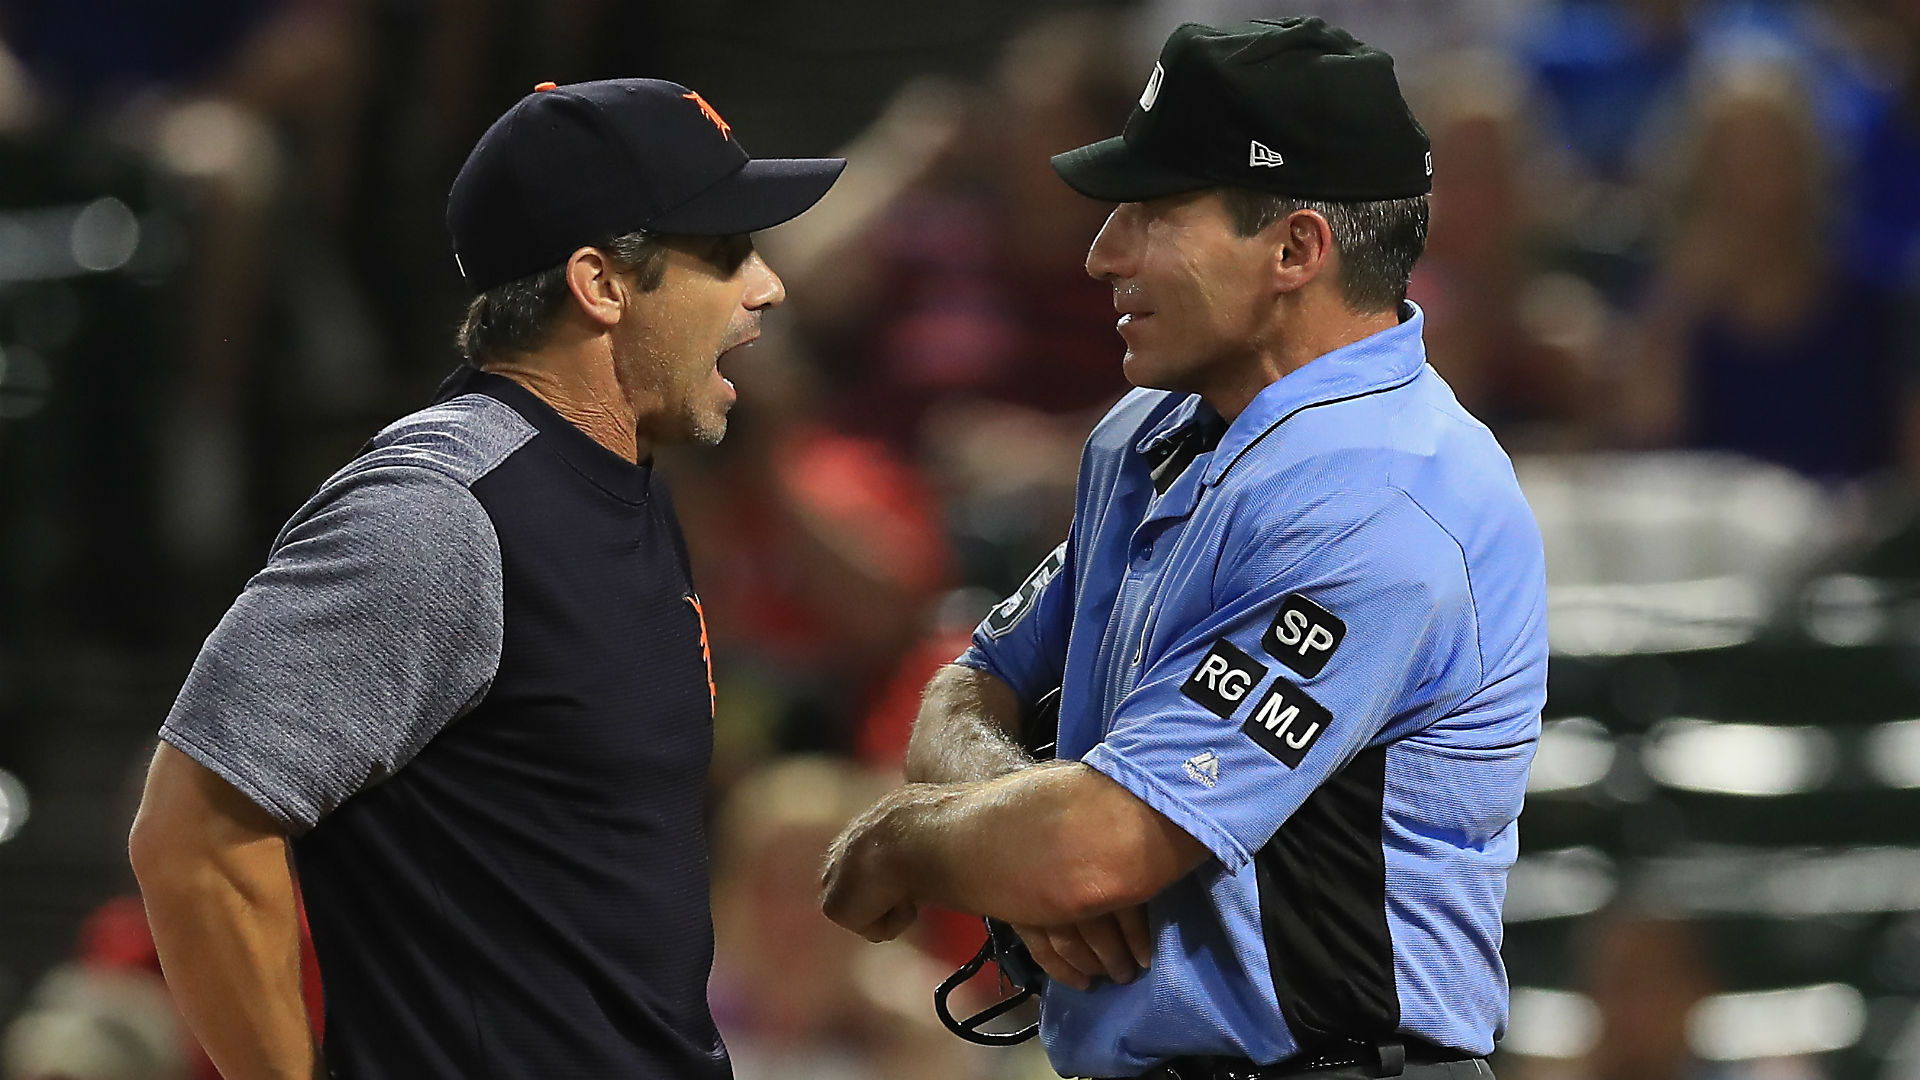 Tigers' Kinsler says ump Hernandez should get out of game